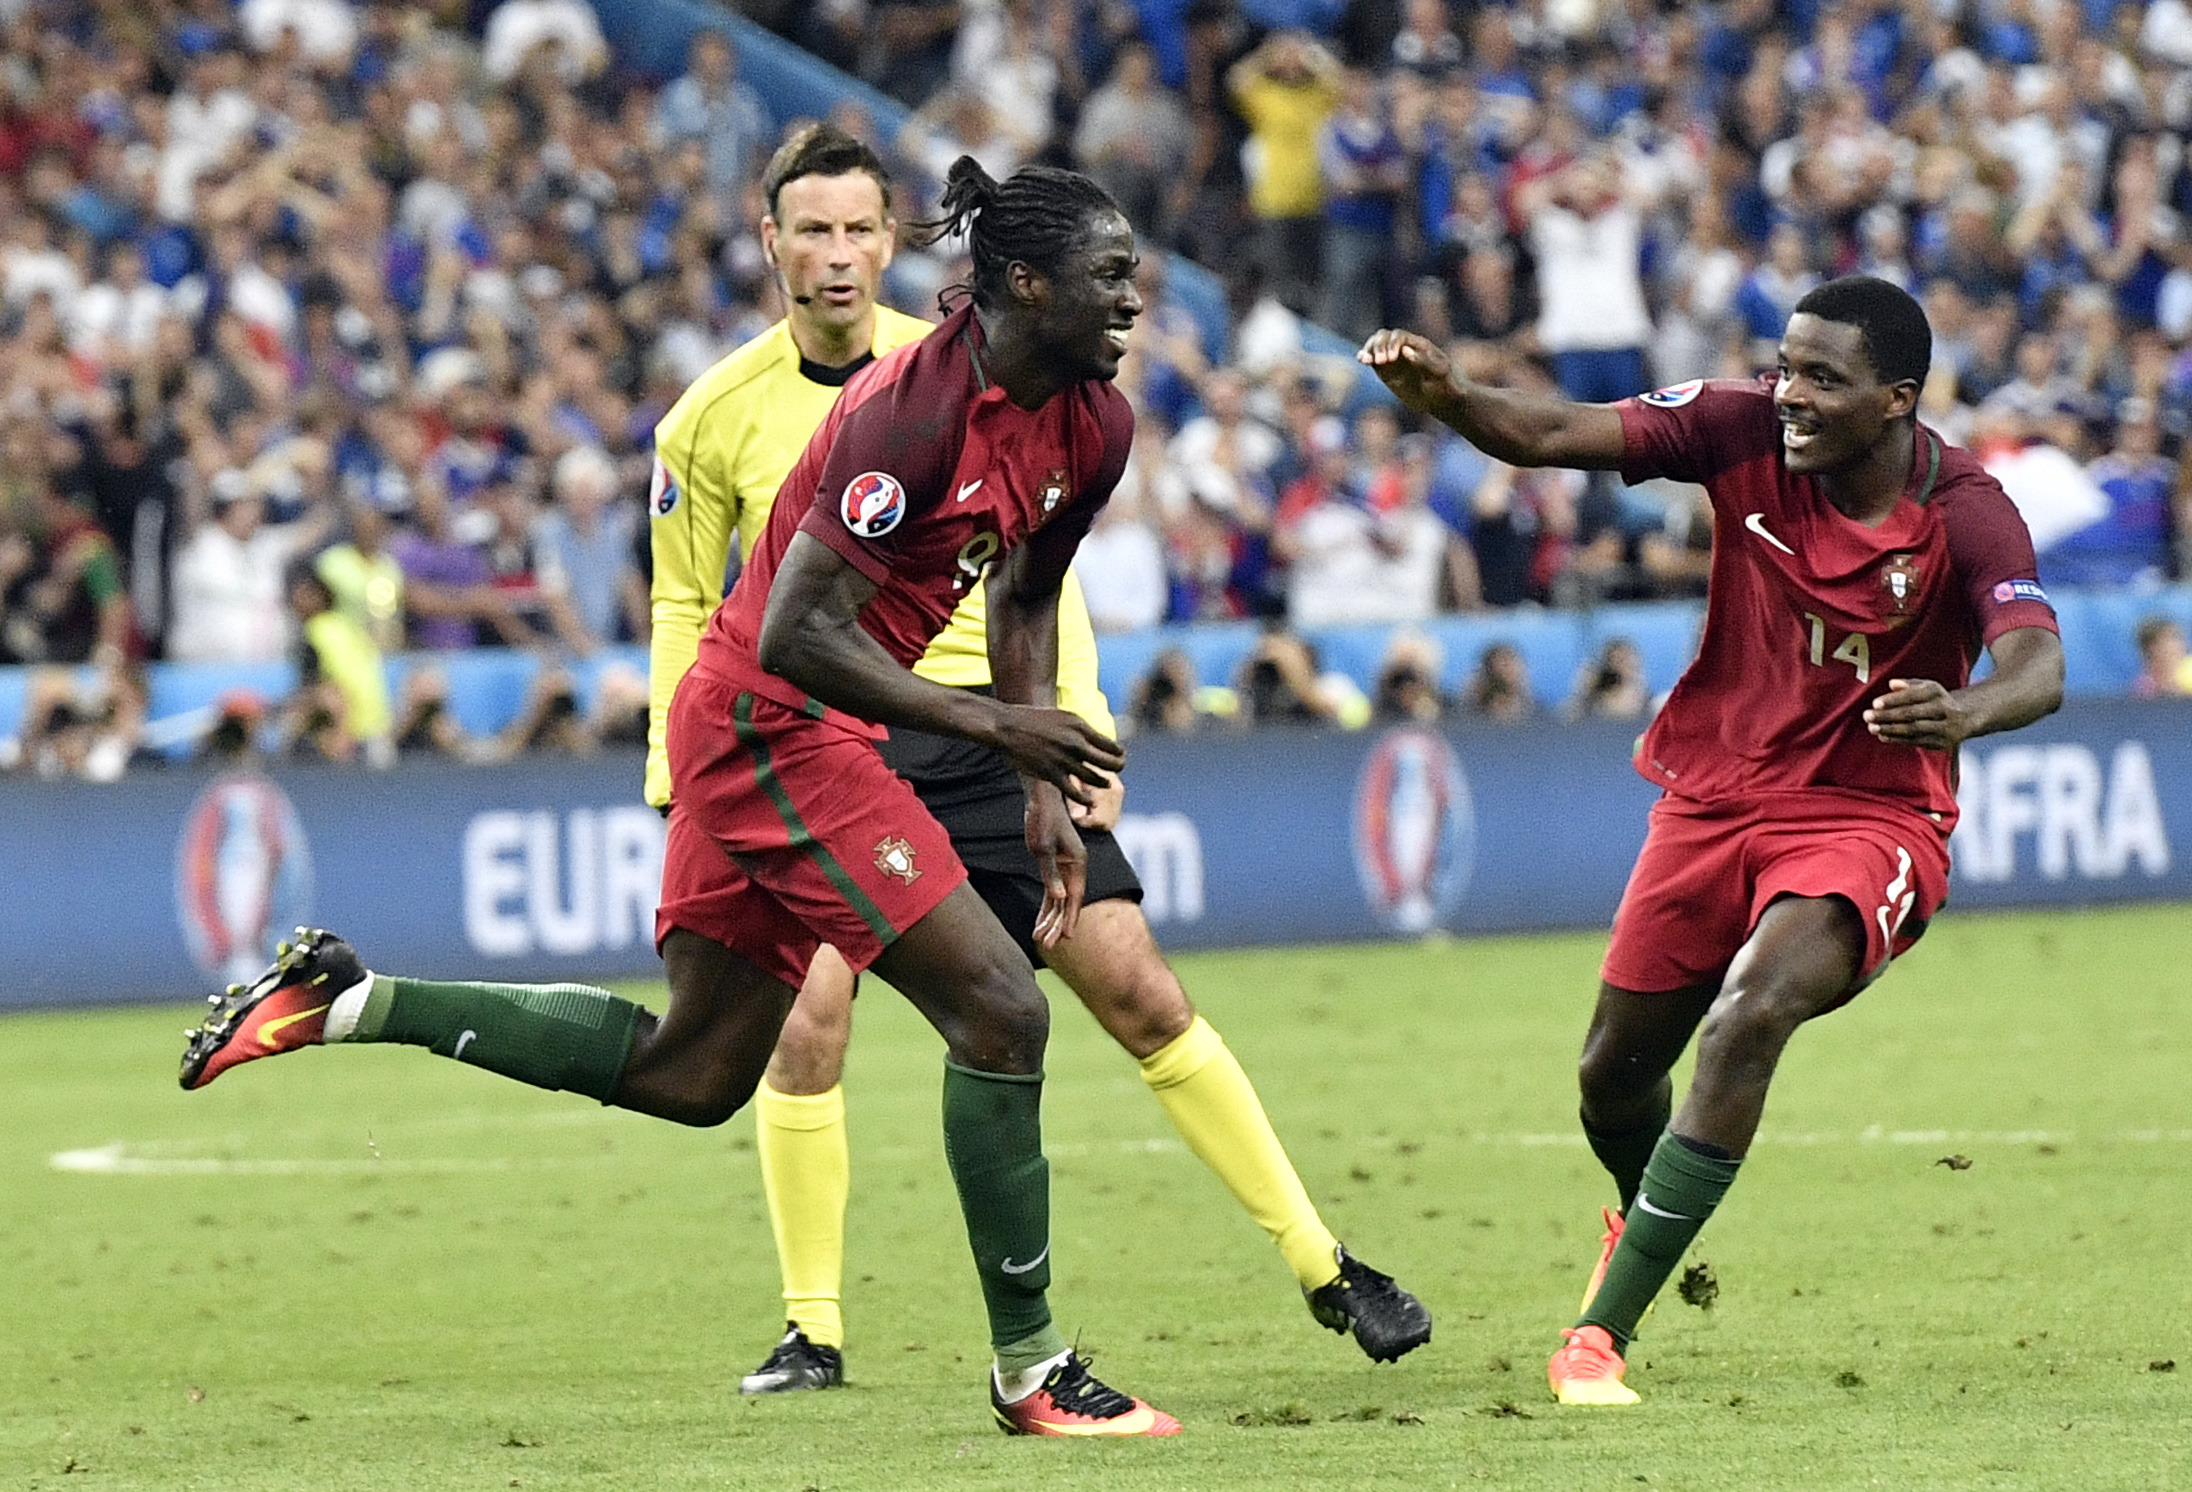 Portugal's Eder, left, celebrates after scoring the opening goal during the Euro 2016 final soccer match between Portugal and France at the Stade de France in Saint-Denis, north of Paris, Sunday, July 10, 2016. (AP Photo/Martin Meissner)